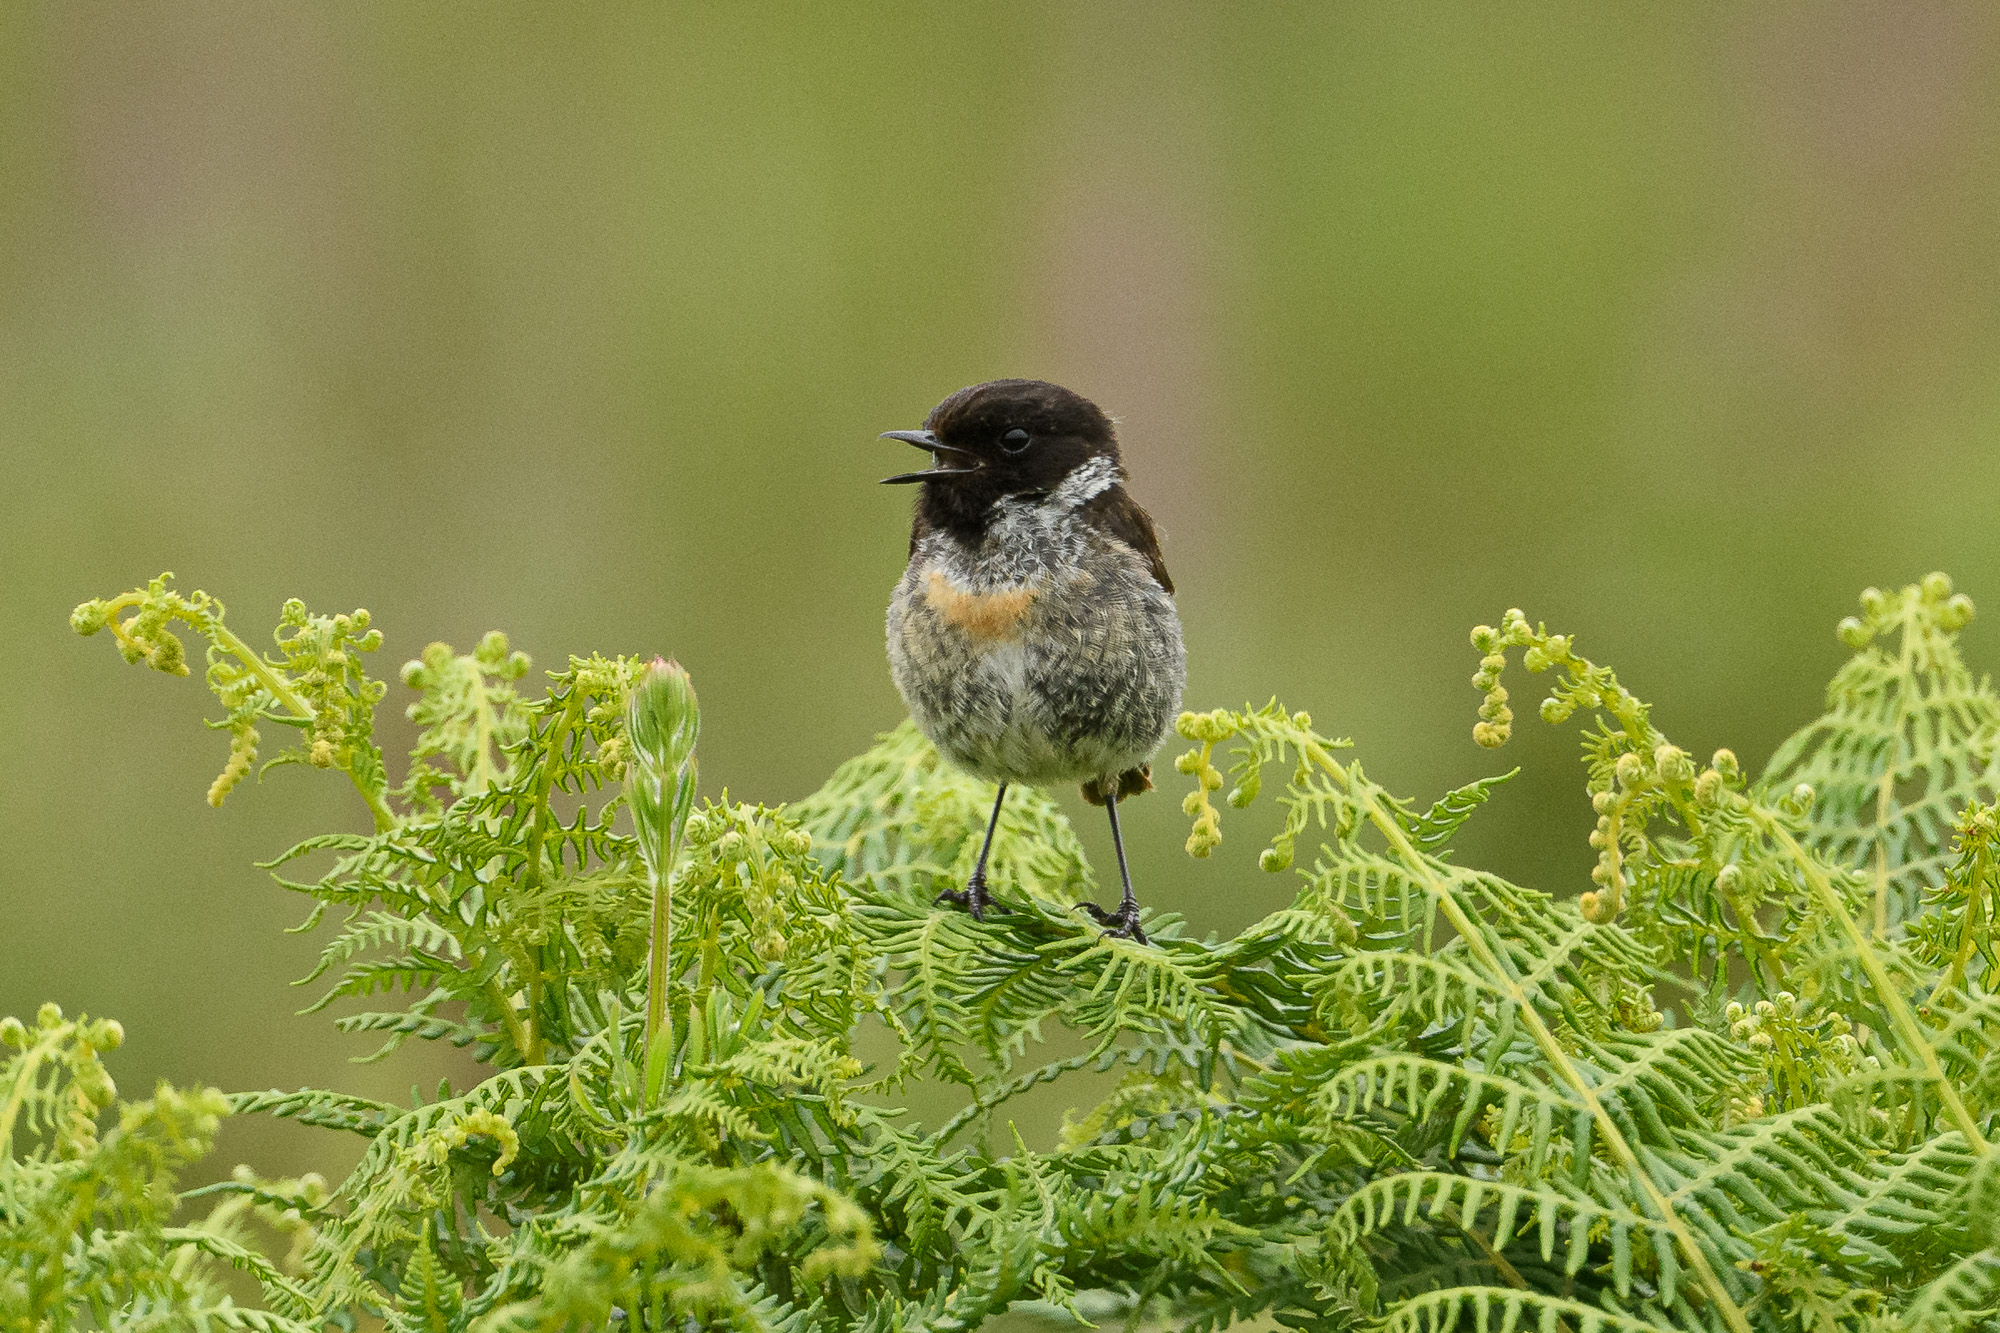 Male stonechat. I'm pretty sure this must be a juvenile. This is close to 100% crop: D500 and 500mm PF lens at f/5.6.